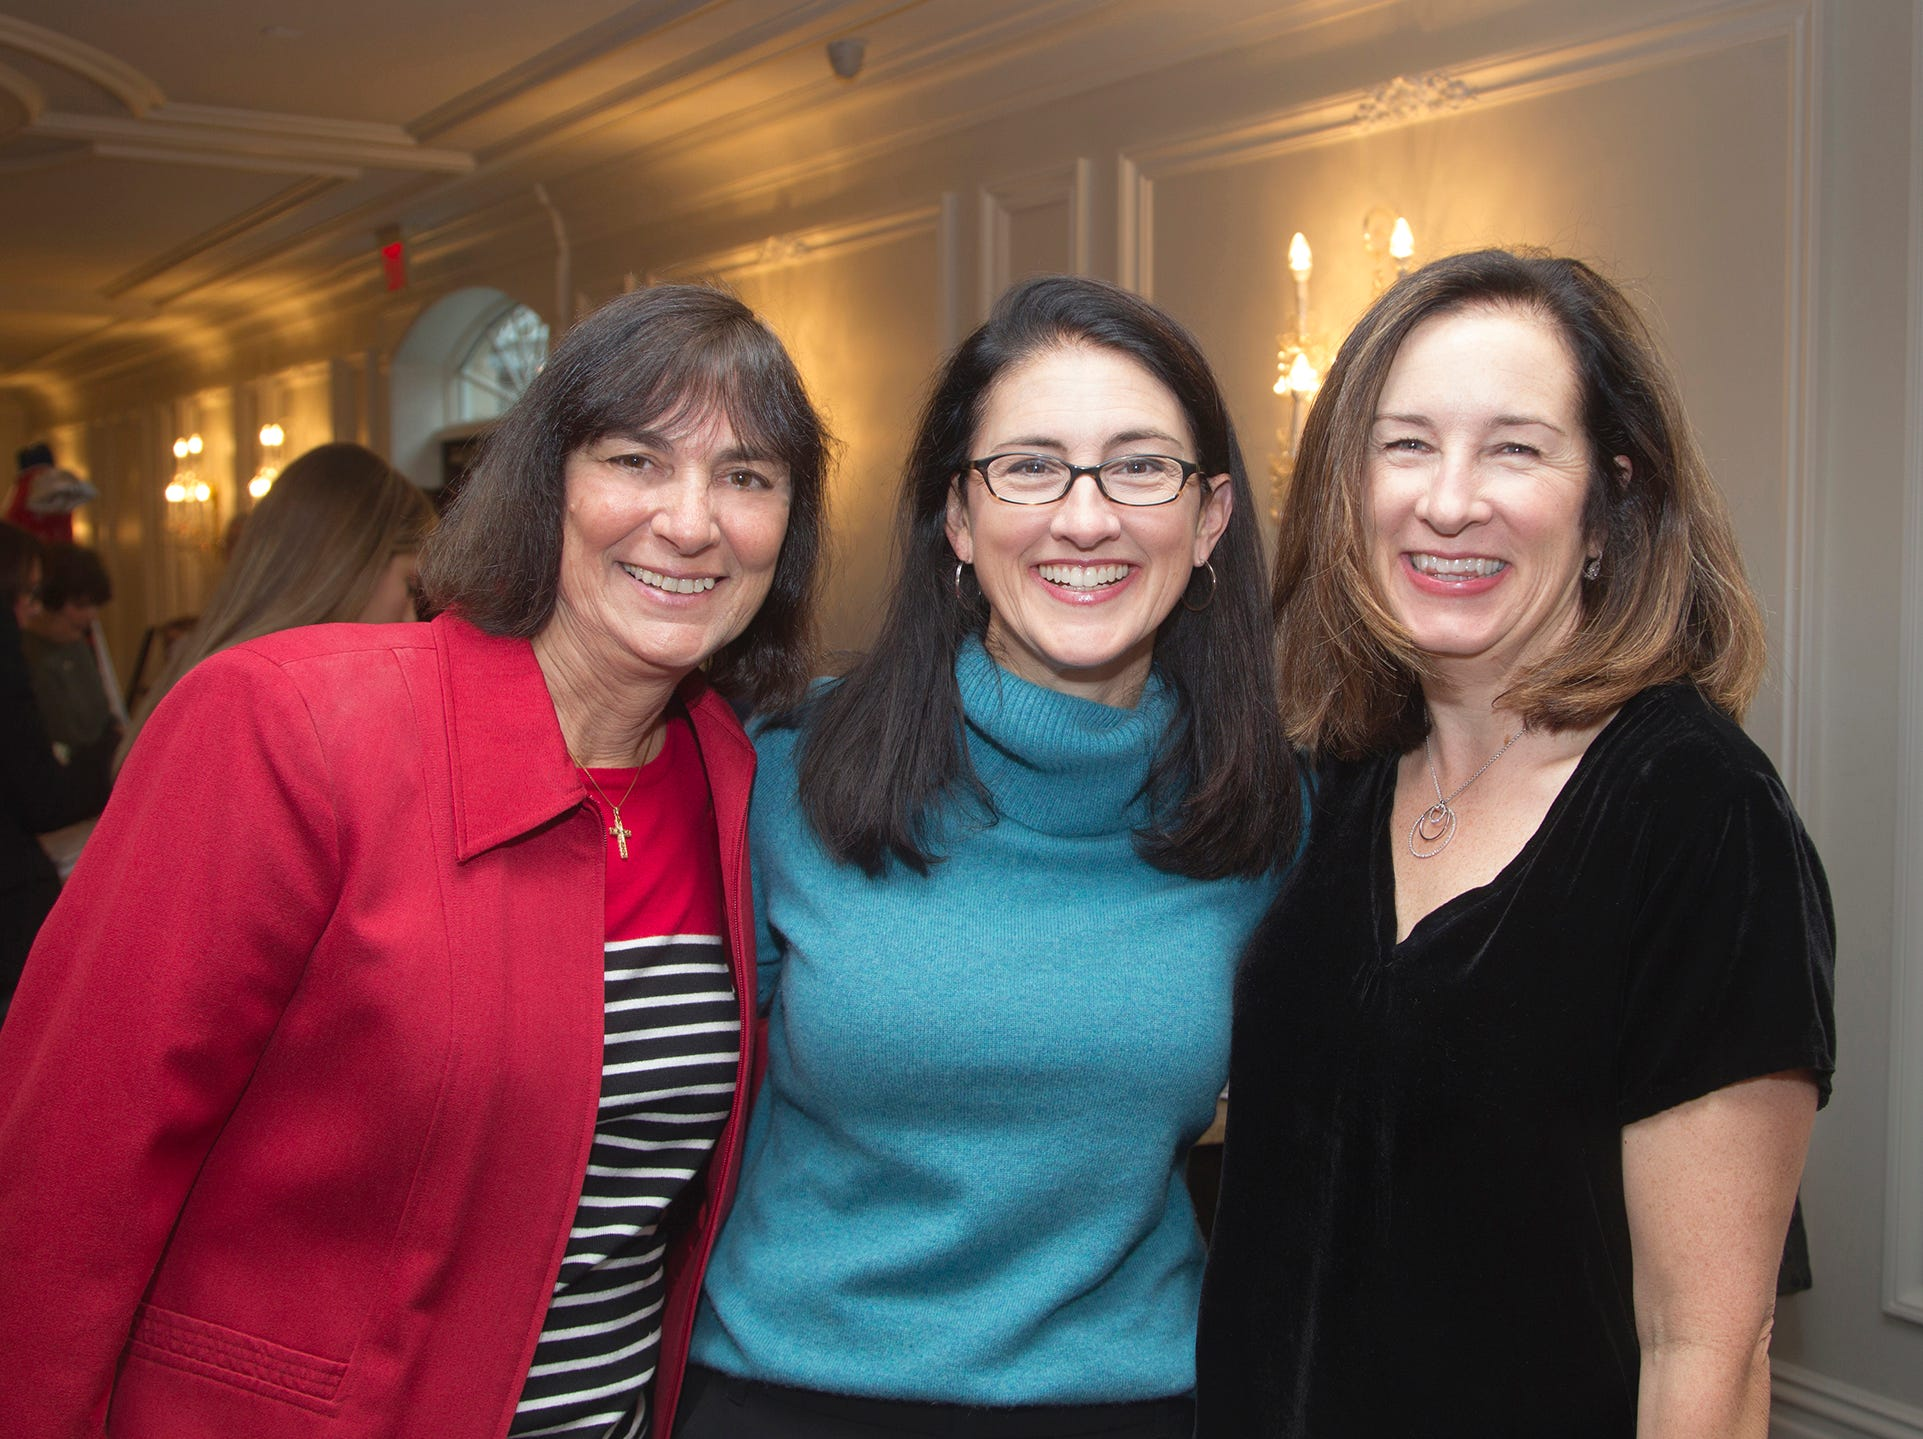 Beth Garrigan, Jenn Hill, Claire O'Toole. Immaculate Heart Academy held its annual Fashion Show fundraiser at Florentine Gardens in River Vale. 12/02/2018